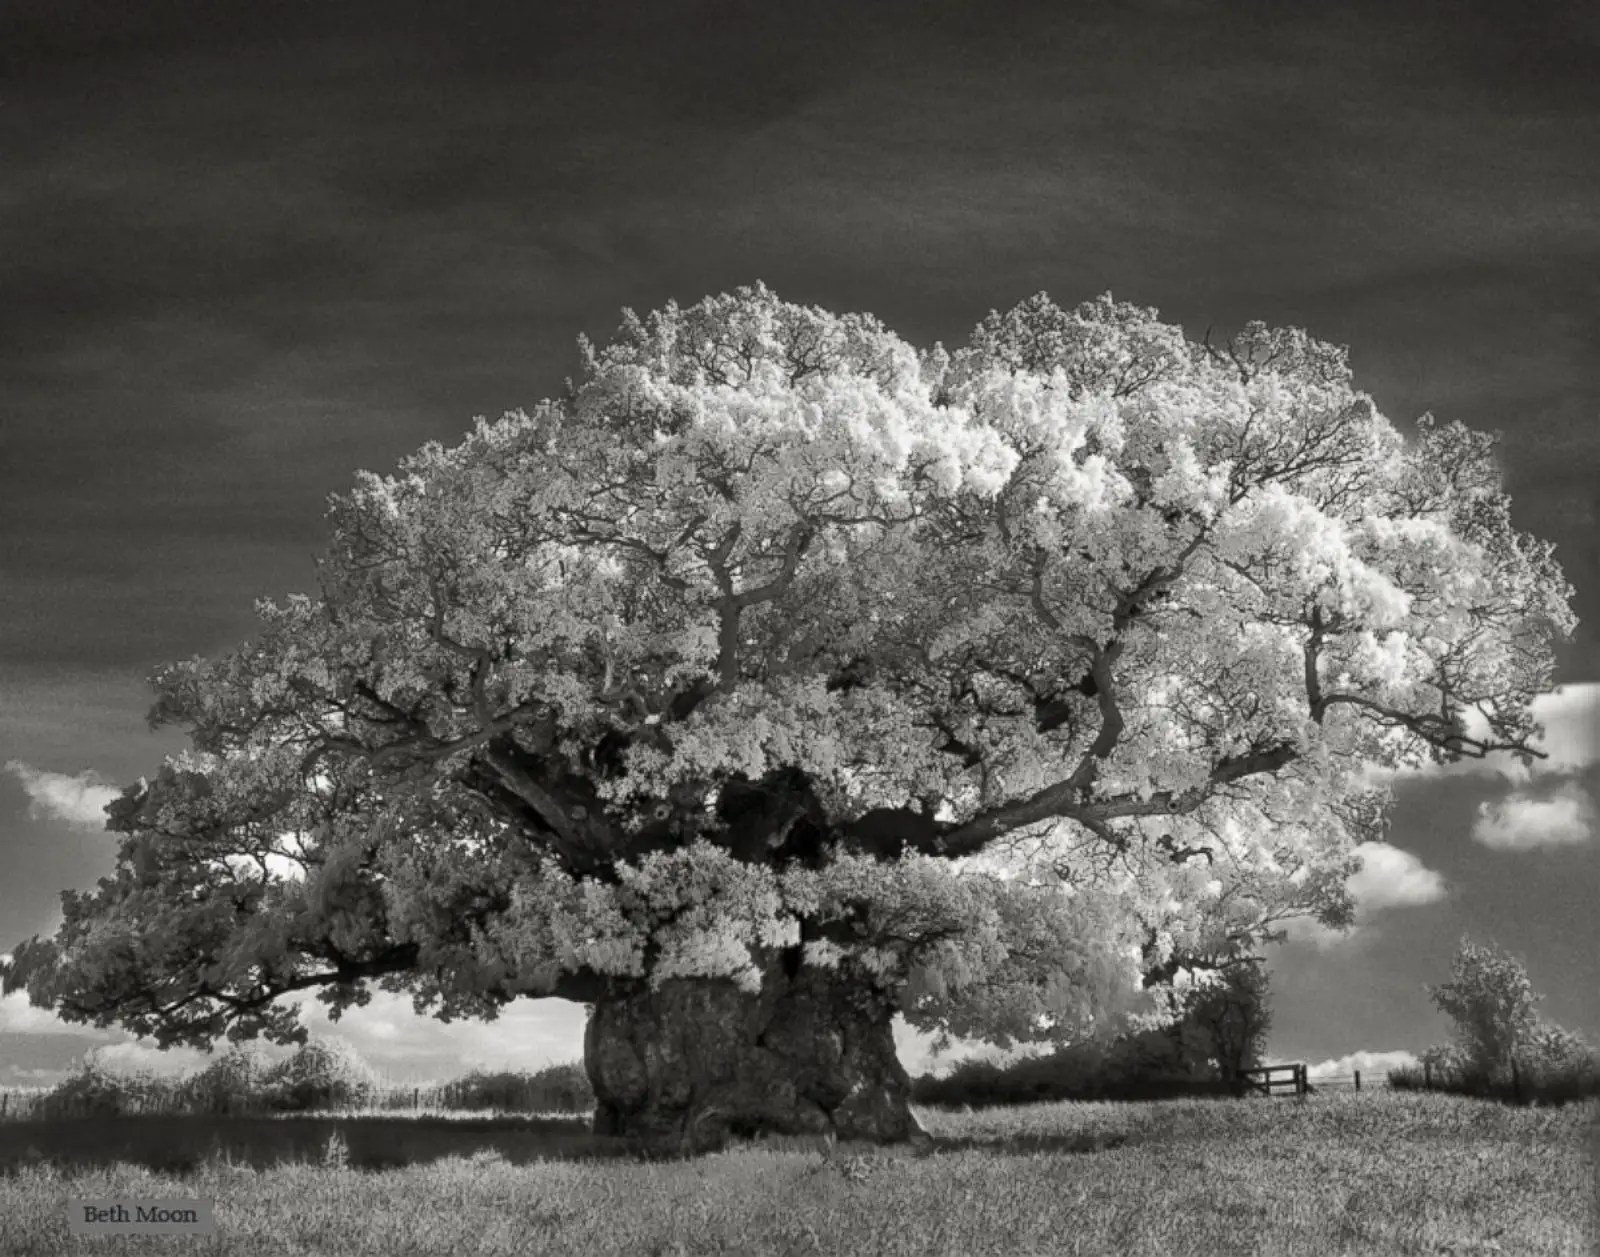 The Bowthorpe Oak, in Lincolnshire, England is thought to be England's oldest oak tree. Estimated to be over 1,000 years old, the Oak is in the Guinness Book of World Records.